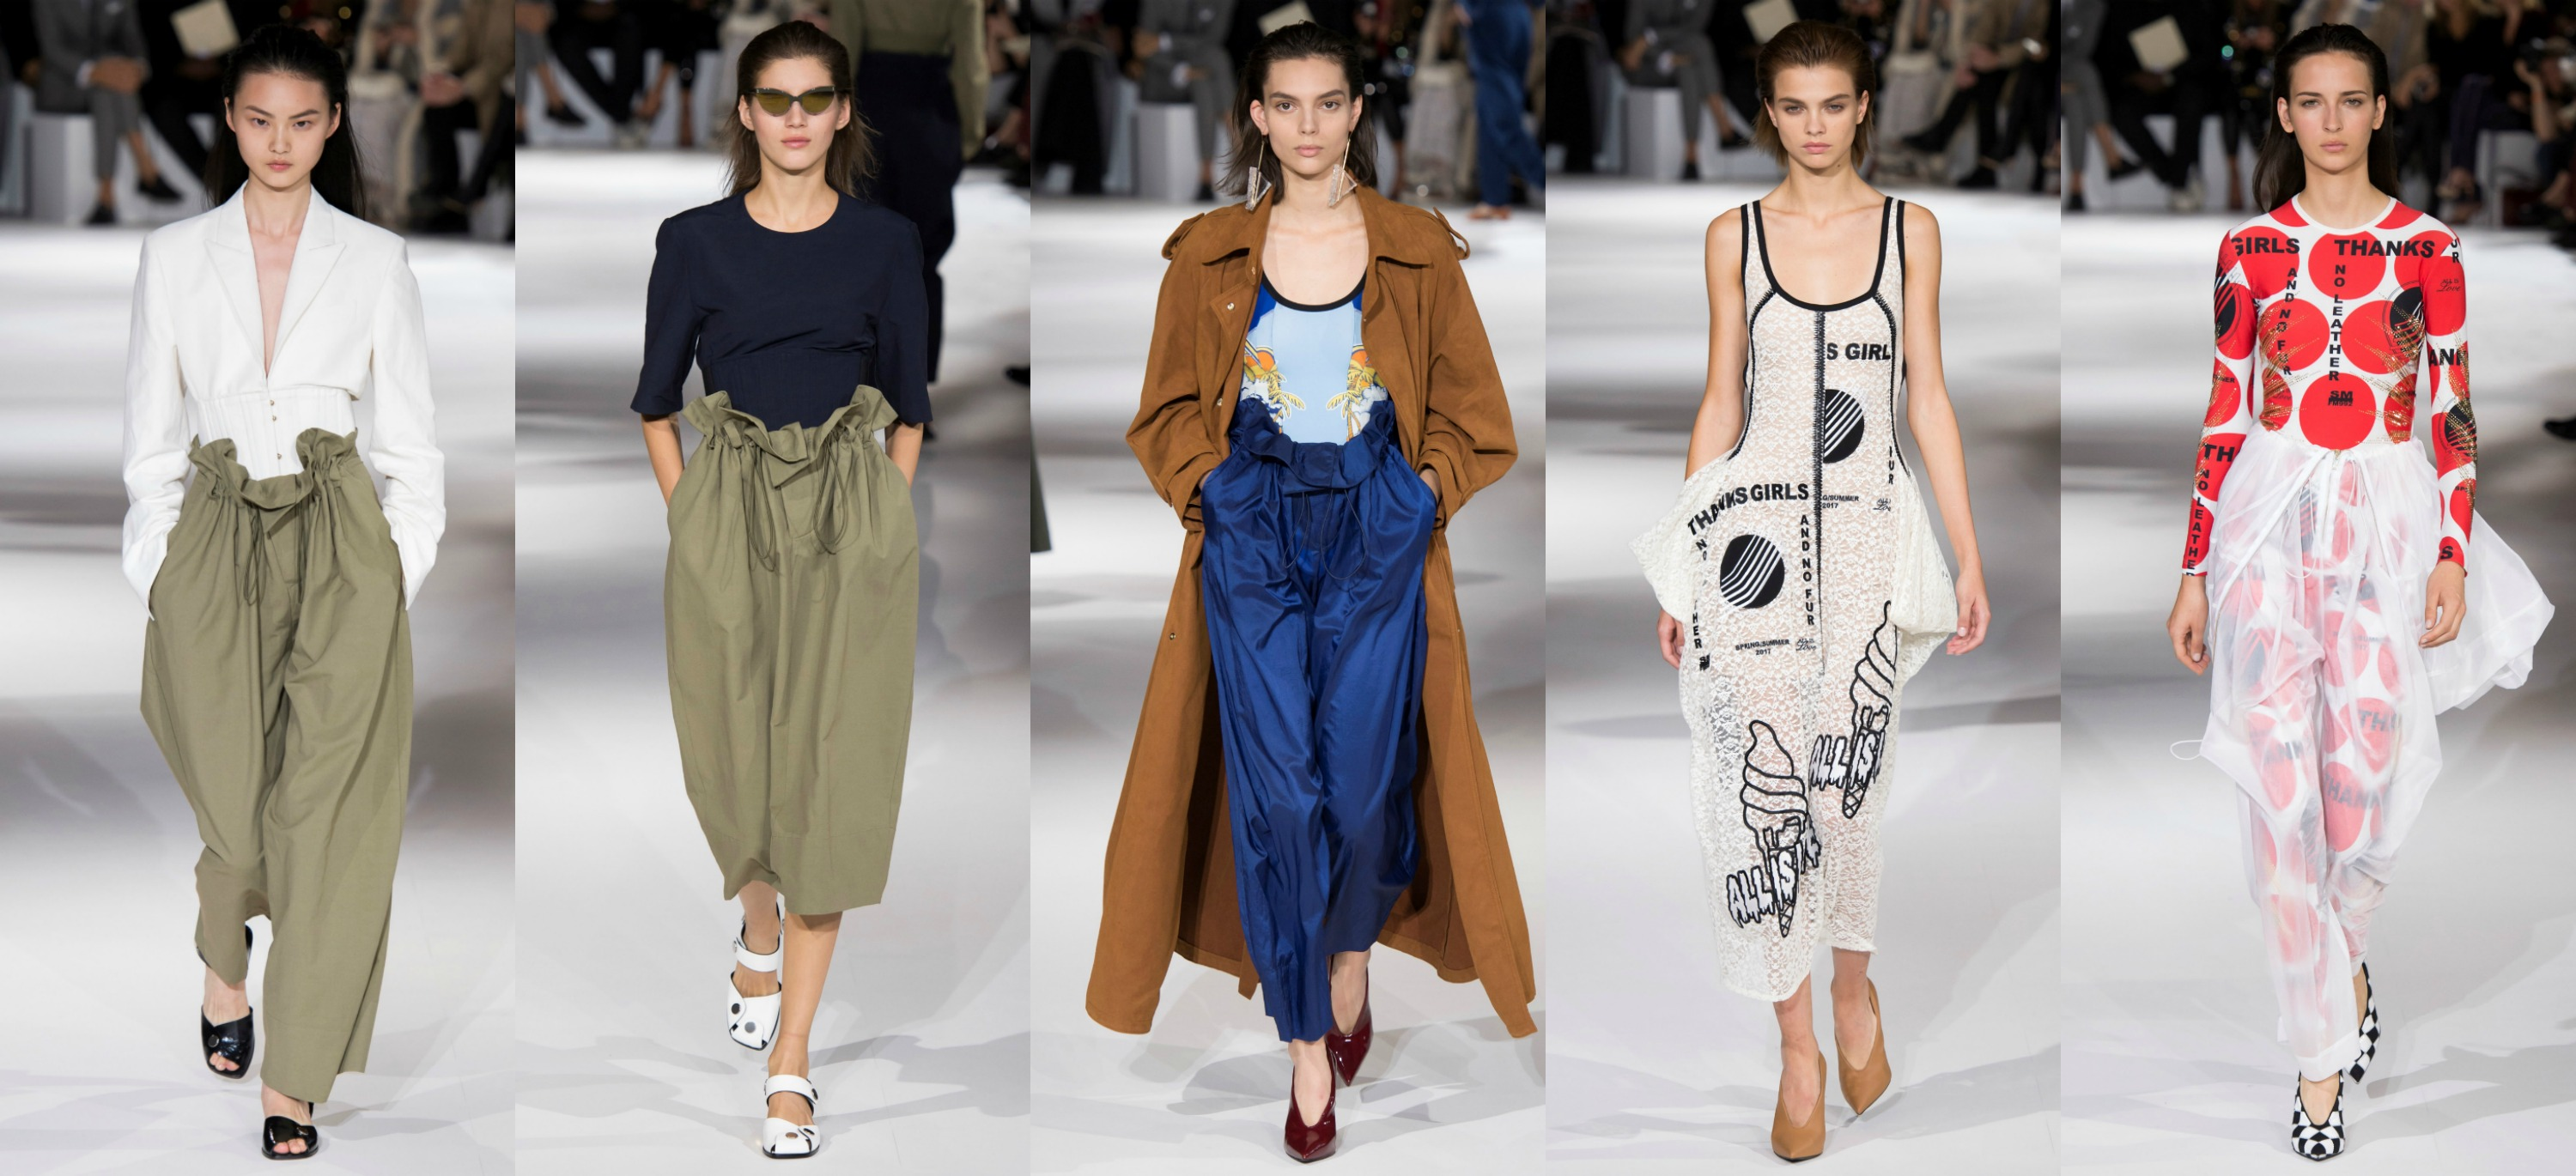 louis vuitton ss 2017, paris fashion week spring summer 2017, sfilate parigi ottobre 2017, sfilate parigi ottobre 2018, sfilate parigi estate 2017, theladycracy.it, elisa bellino, fashion blogger più influenti 2016, fashion blogger famose 2016, fashion blogger milano 2016, fashion blogger italiane 2016, fashion blog 2016, stella mccartney ss 2017, sfilate parigi ottobre 2016